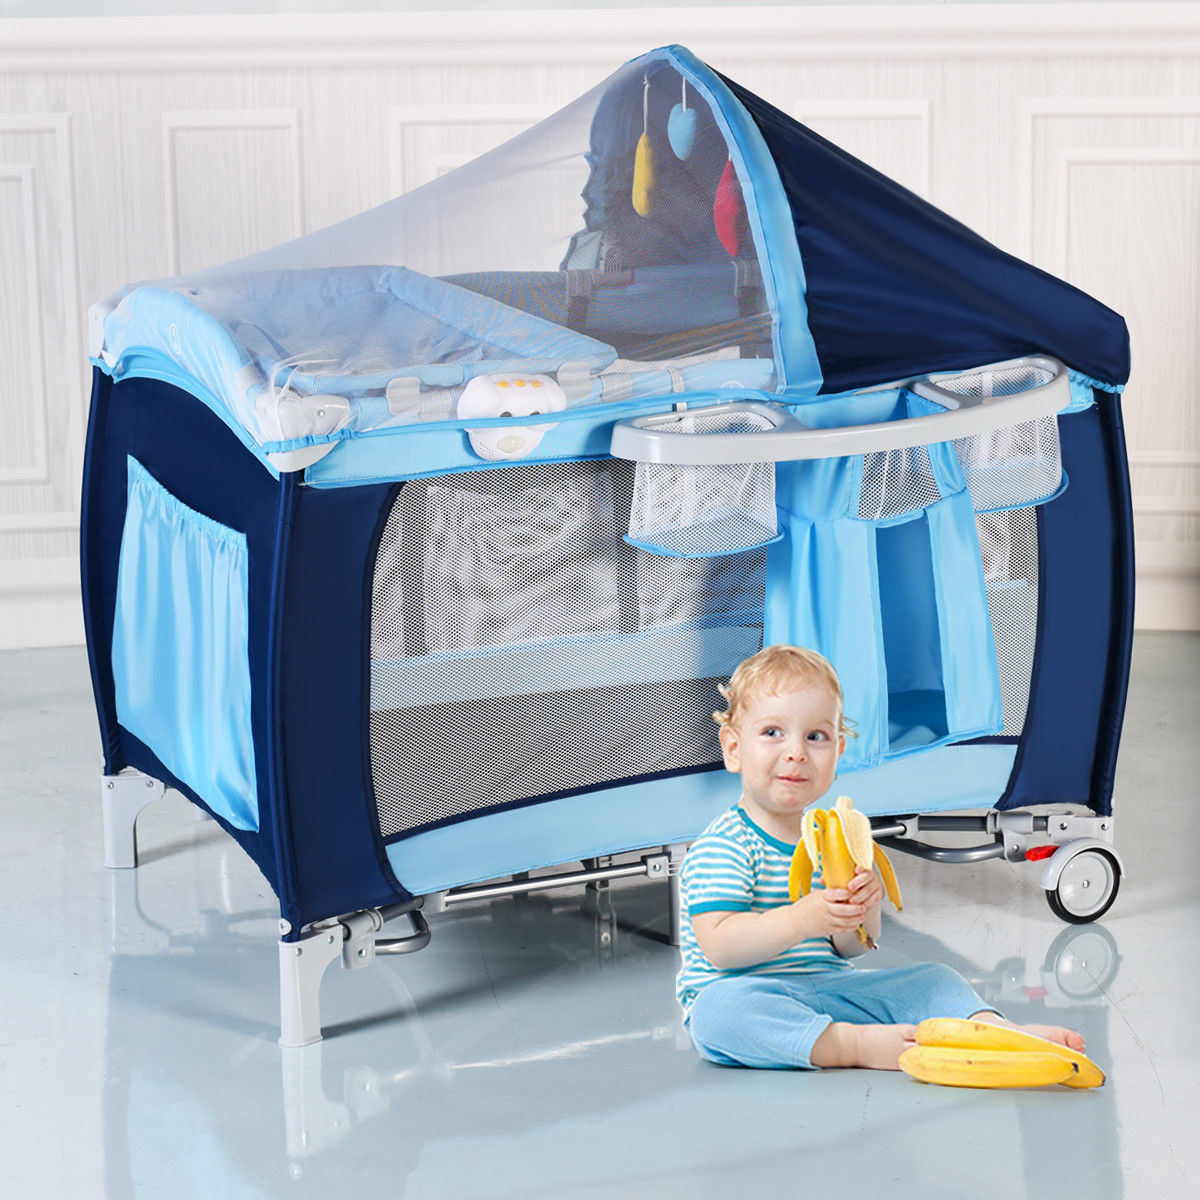 Costway Foldable Baby Crib Playpen Travel Infant Bassinet Bed Mosquito Net Music w Bag by Costway